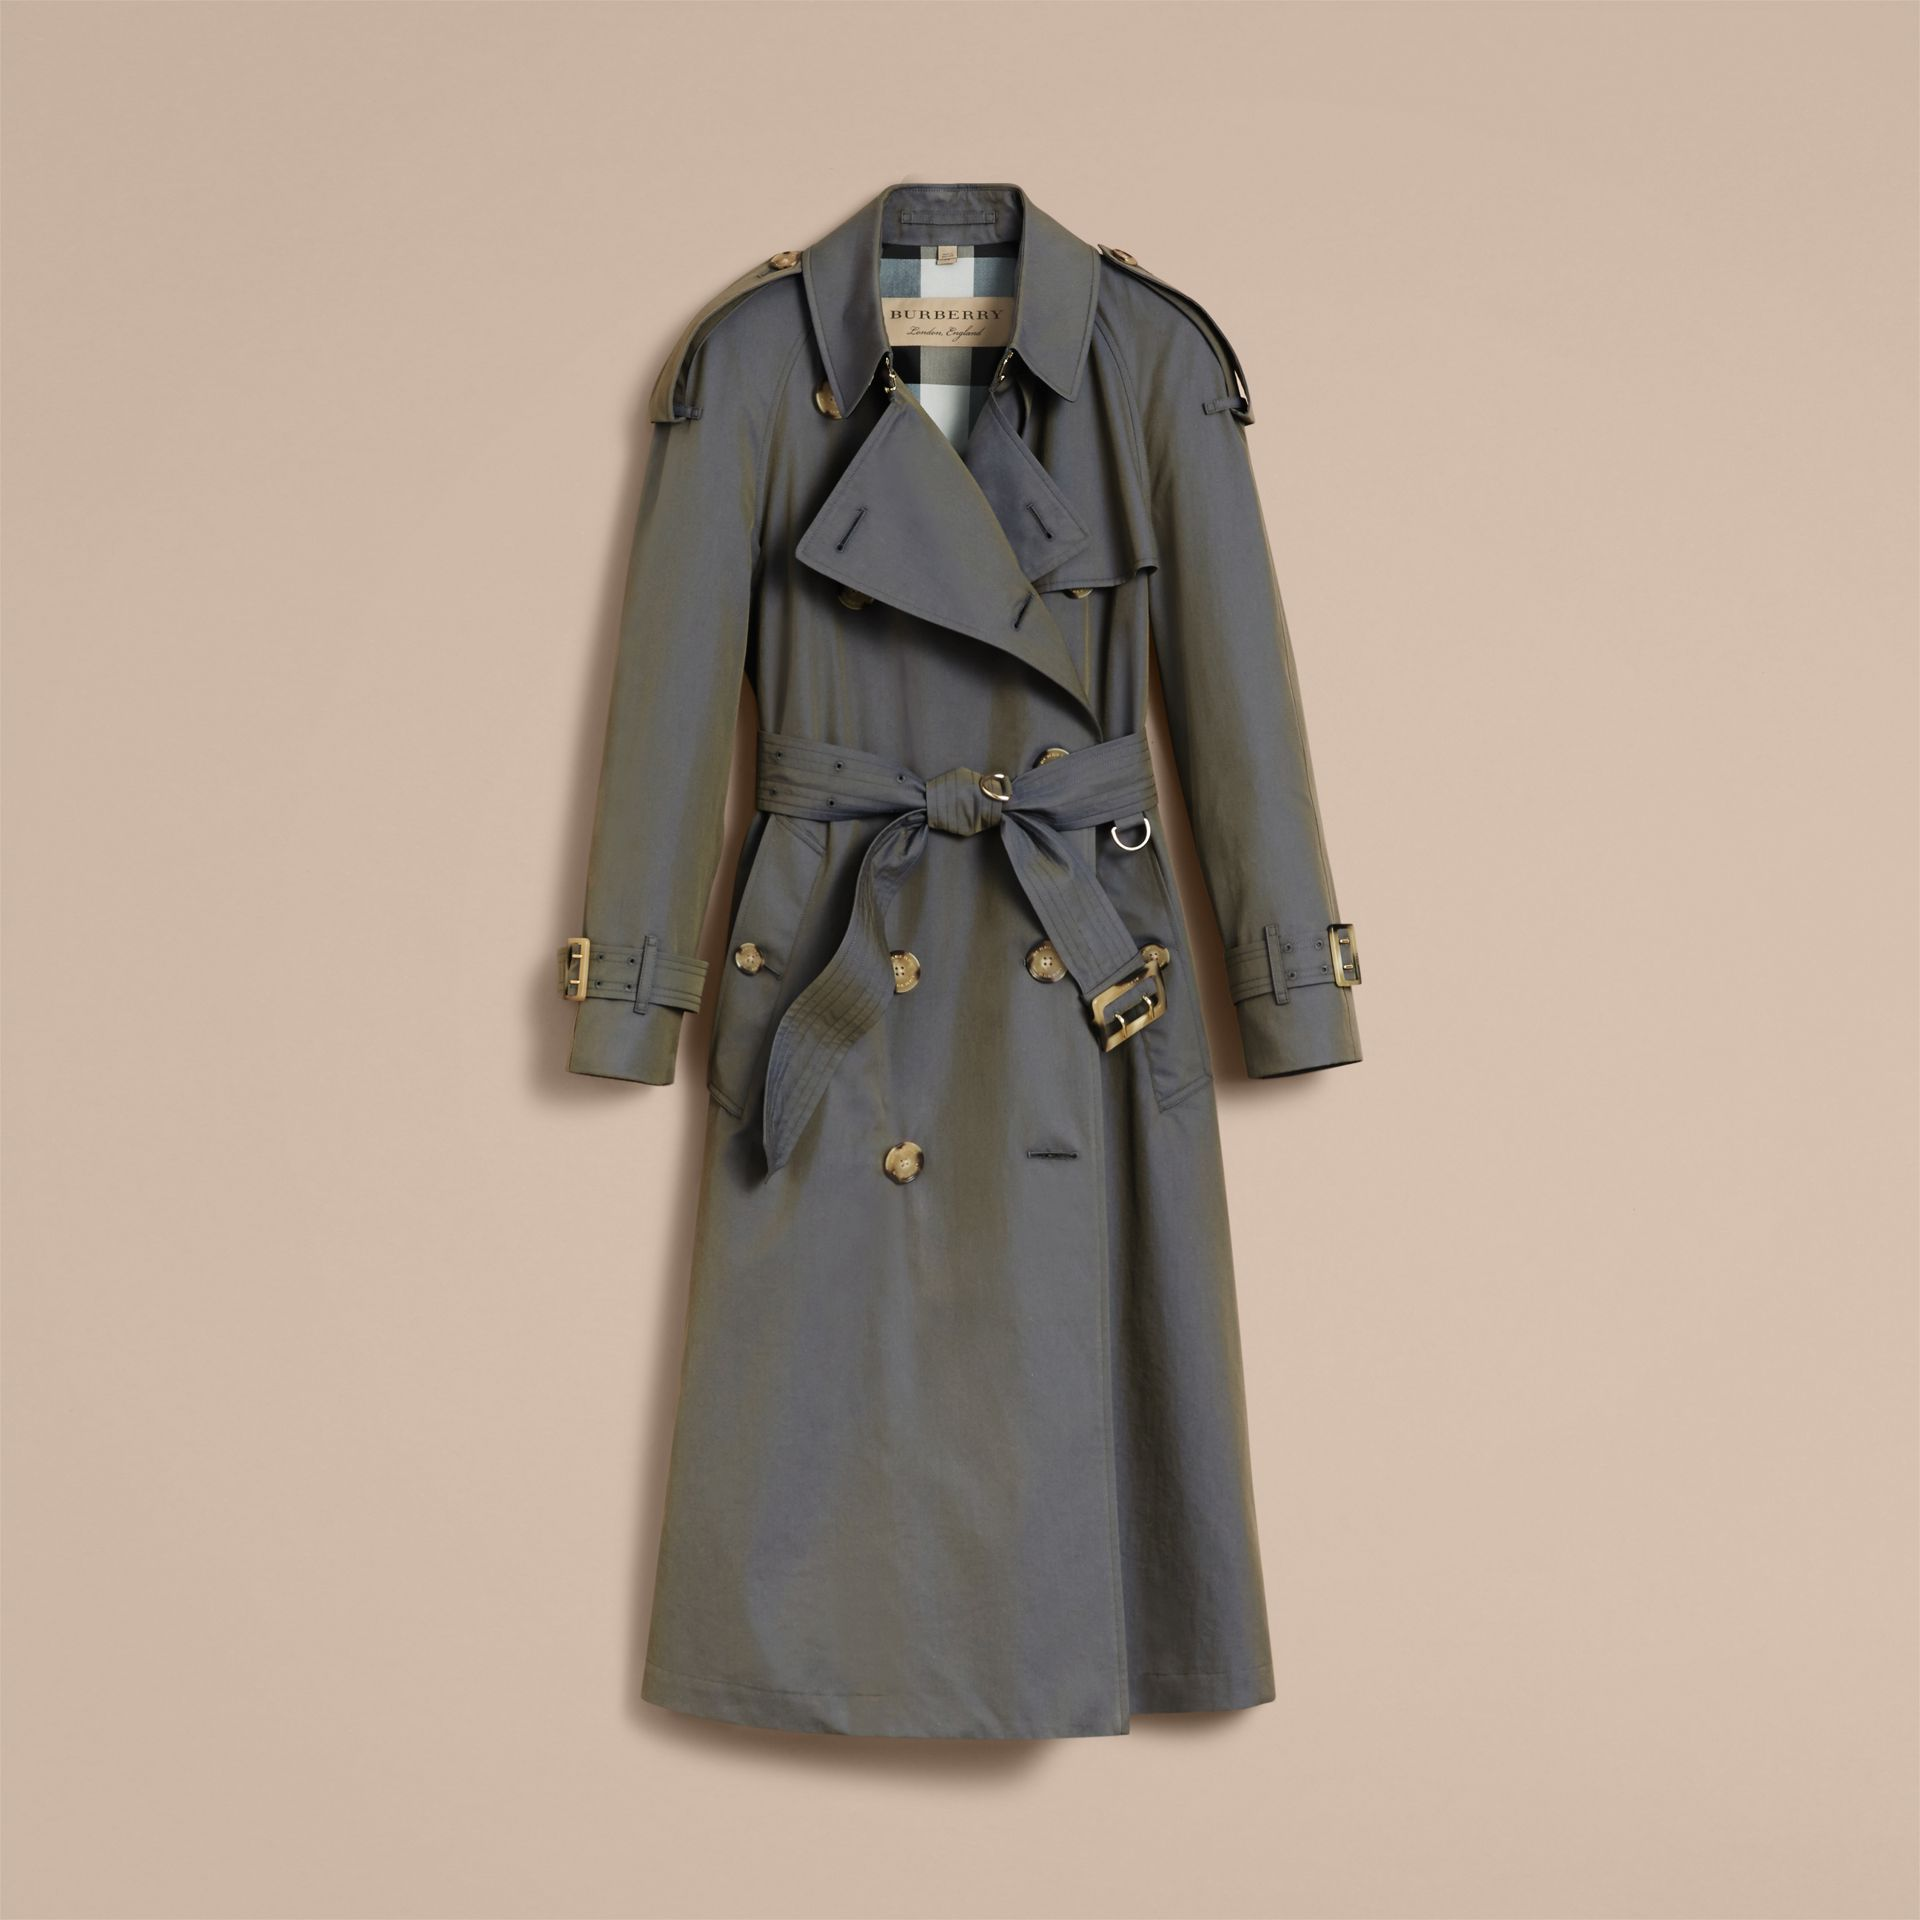 Tropical Gabardine Trench Coat in Storm Blue - Women | Burberry Canada - gallery image 4